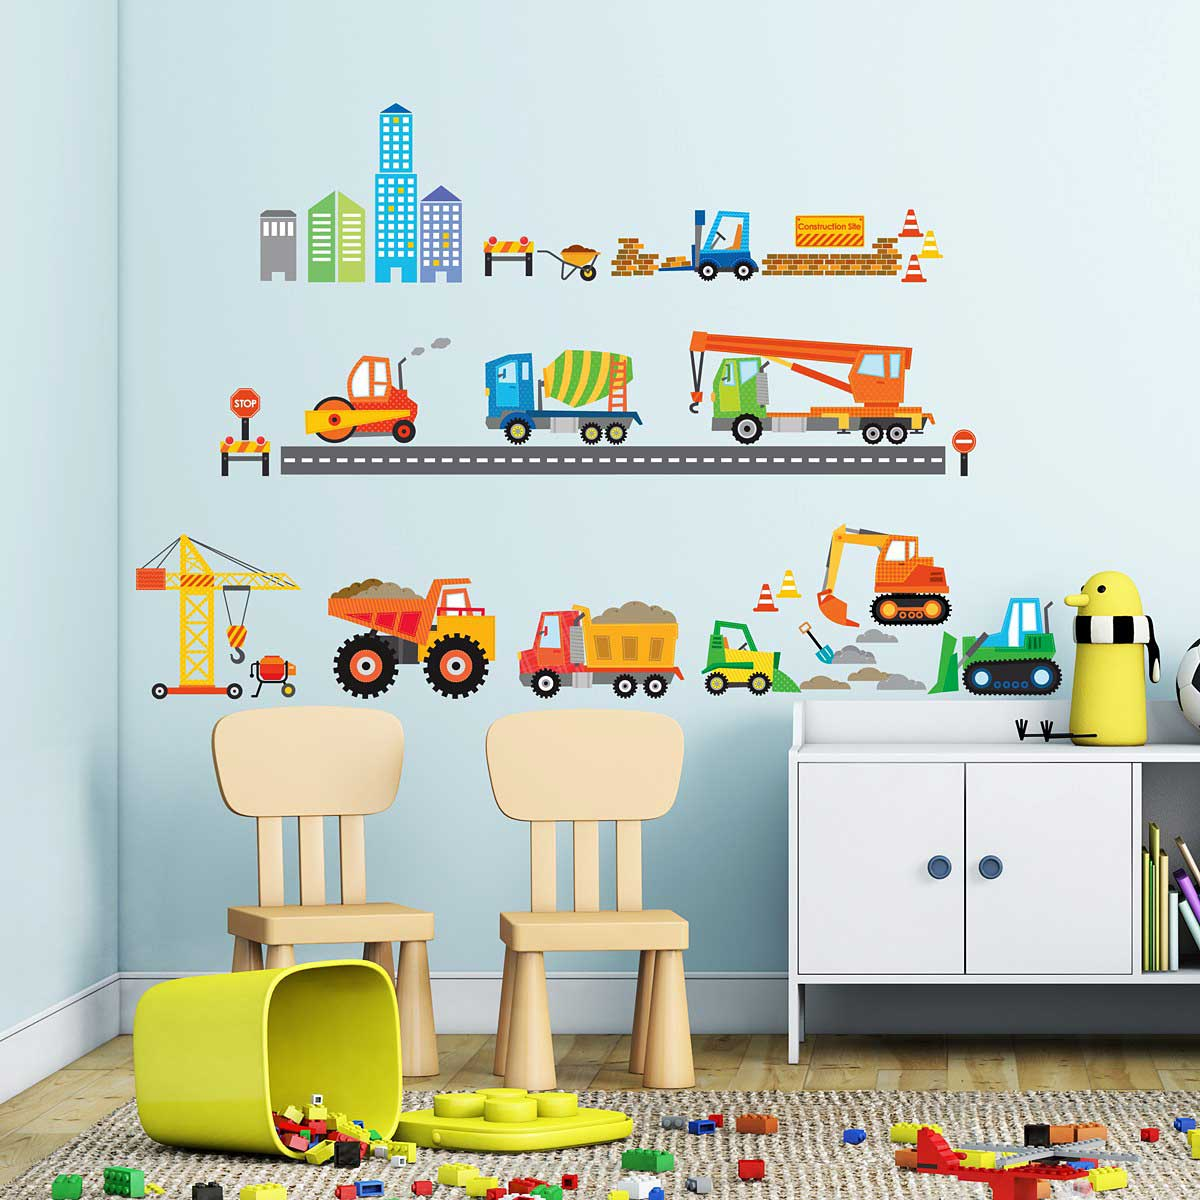 wandsticker baustelle baufahrzeuge wandsticker kinderzimmer. Black Bedroom Furniture Sets. Home Design Ideas